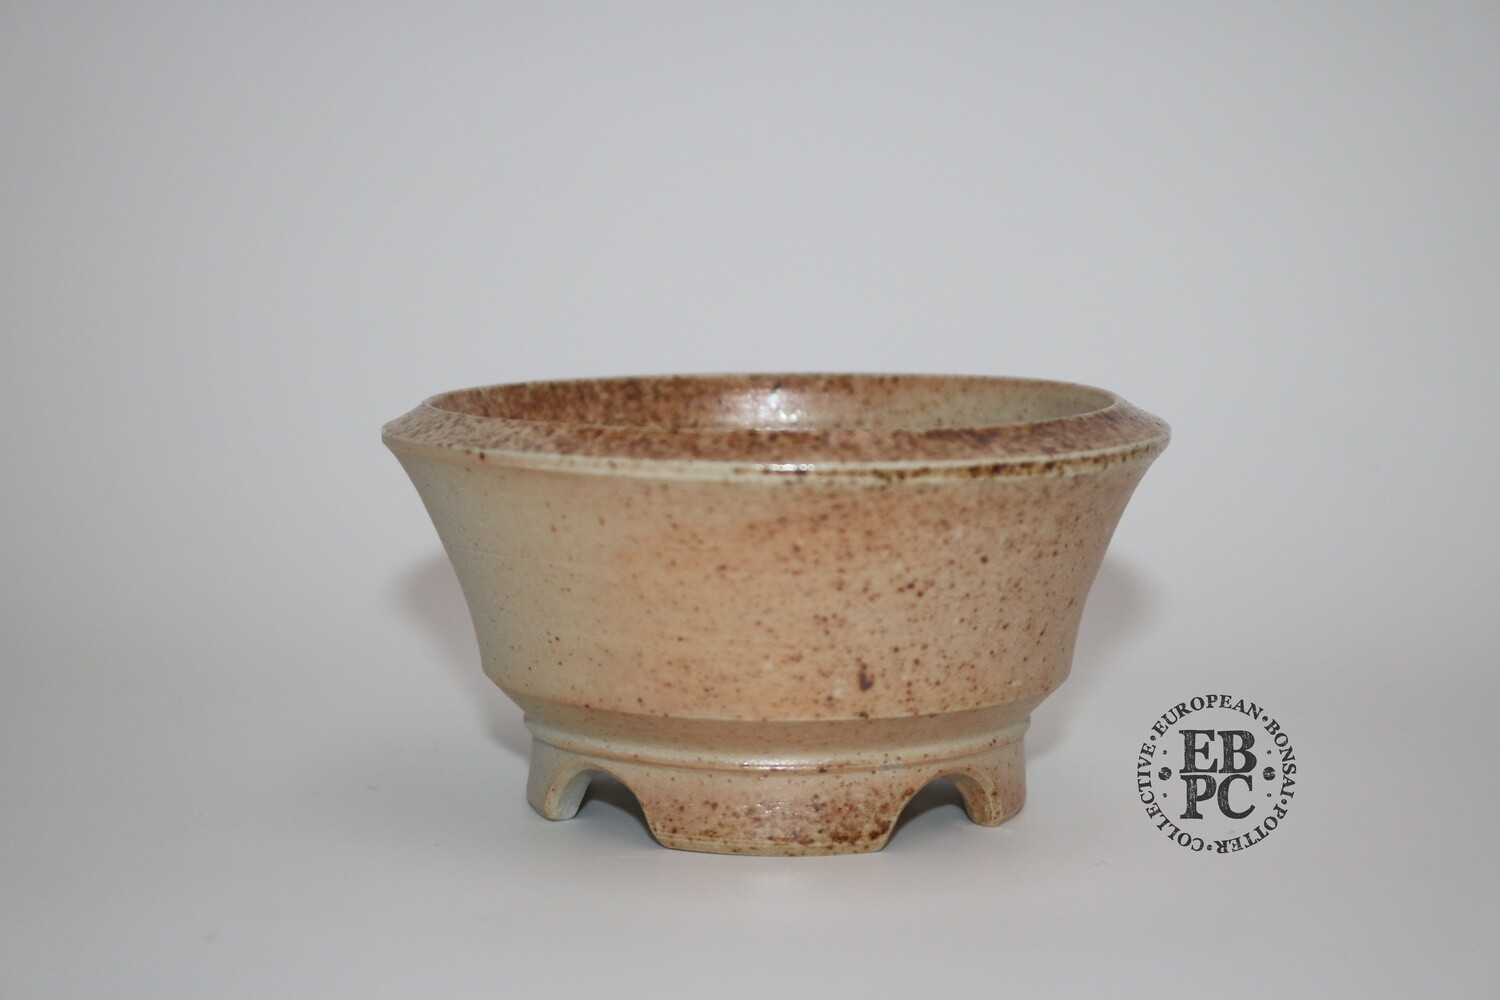 SOLD - Gramming Pots - 10cm; Round; Wood-fired; Unglazed; Tomas Gramming